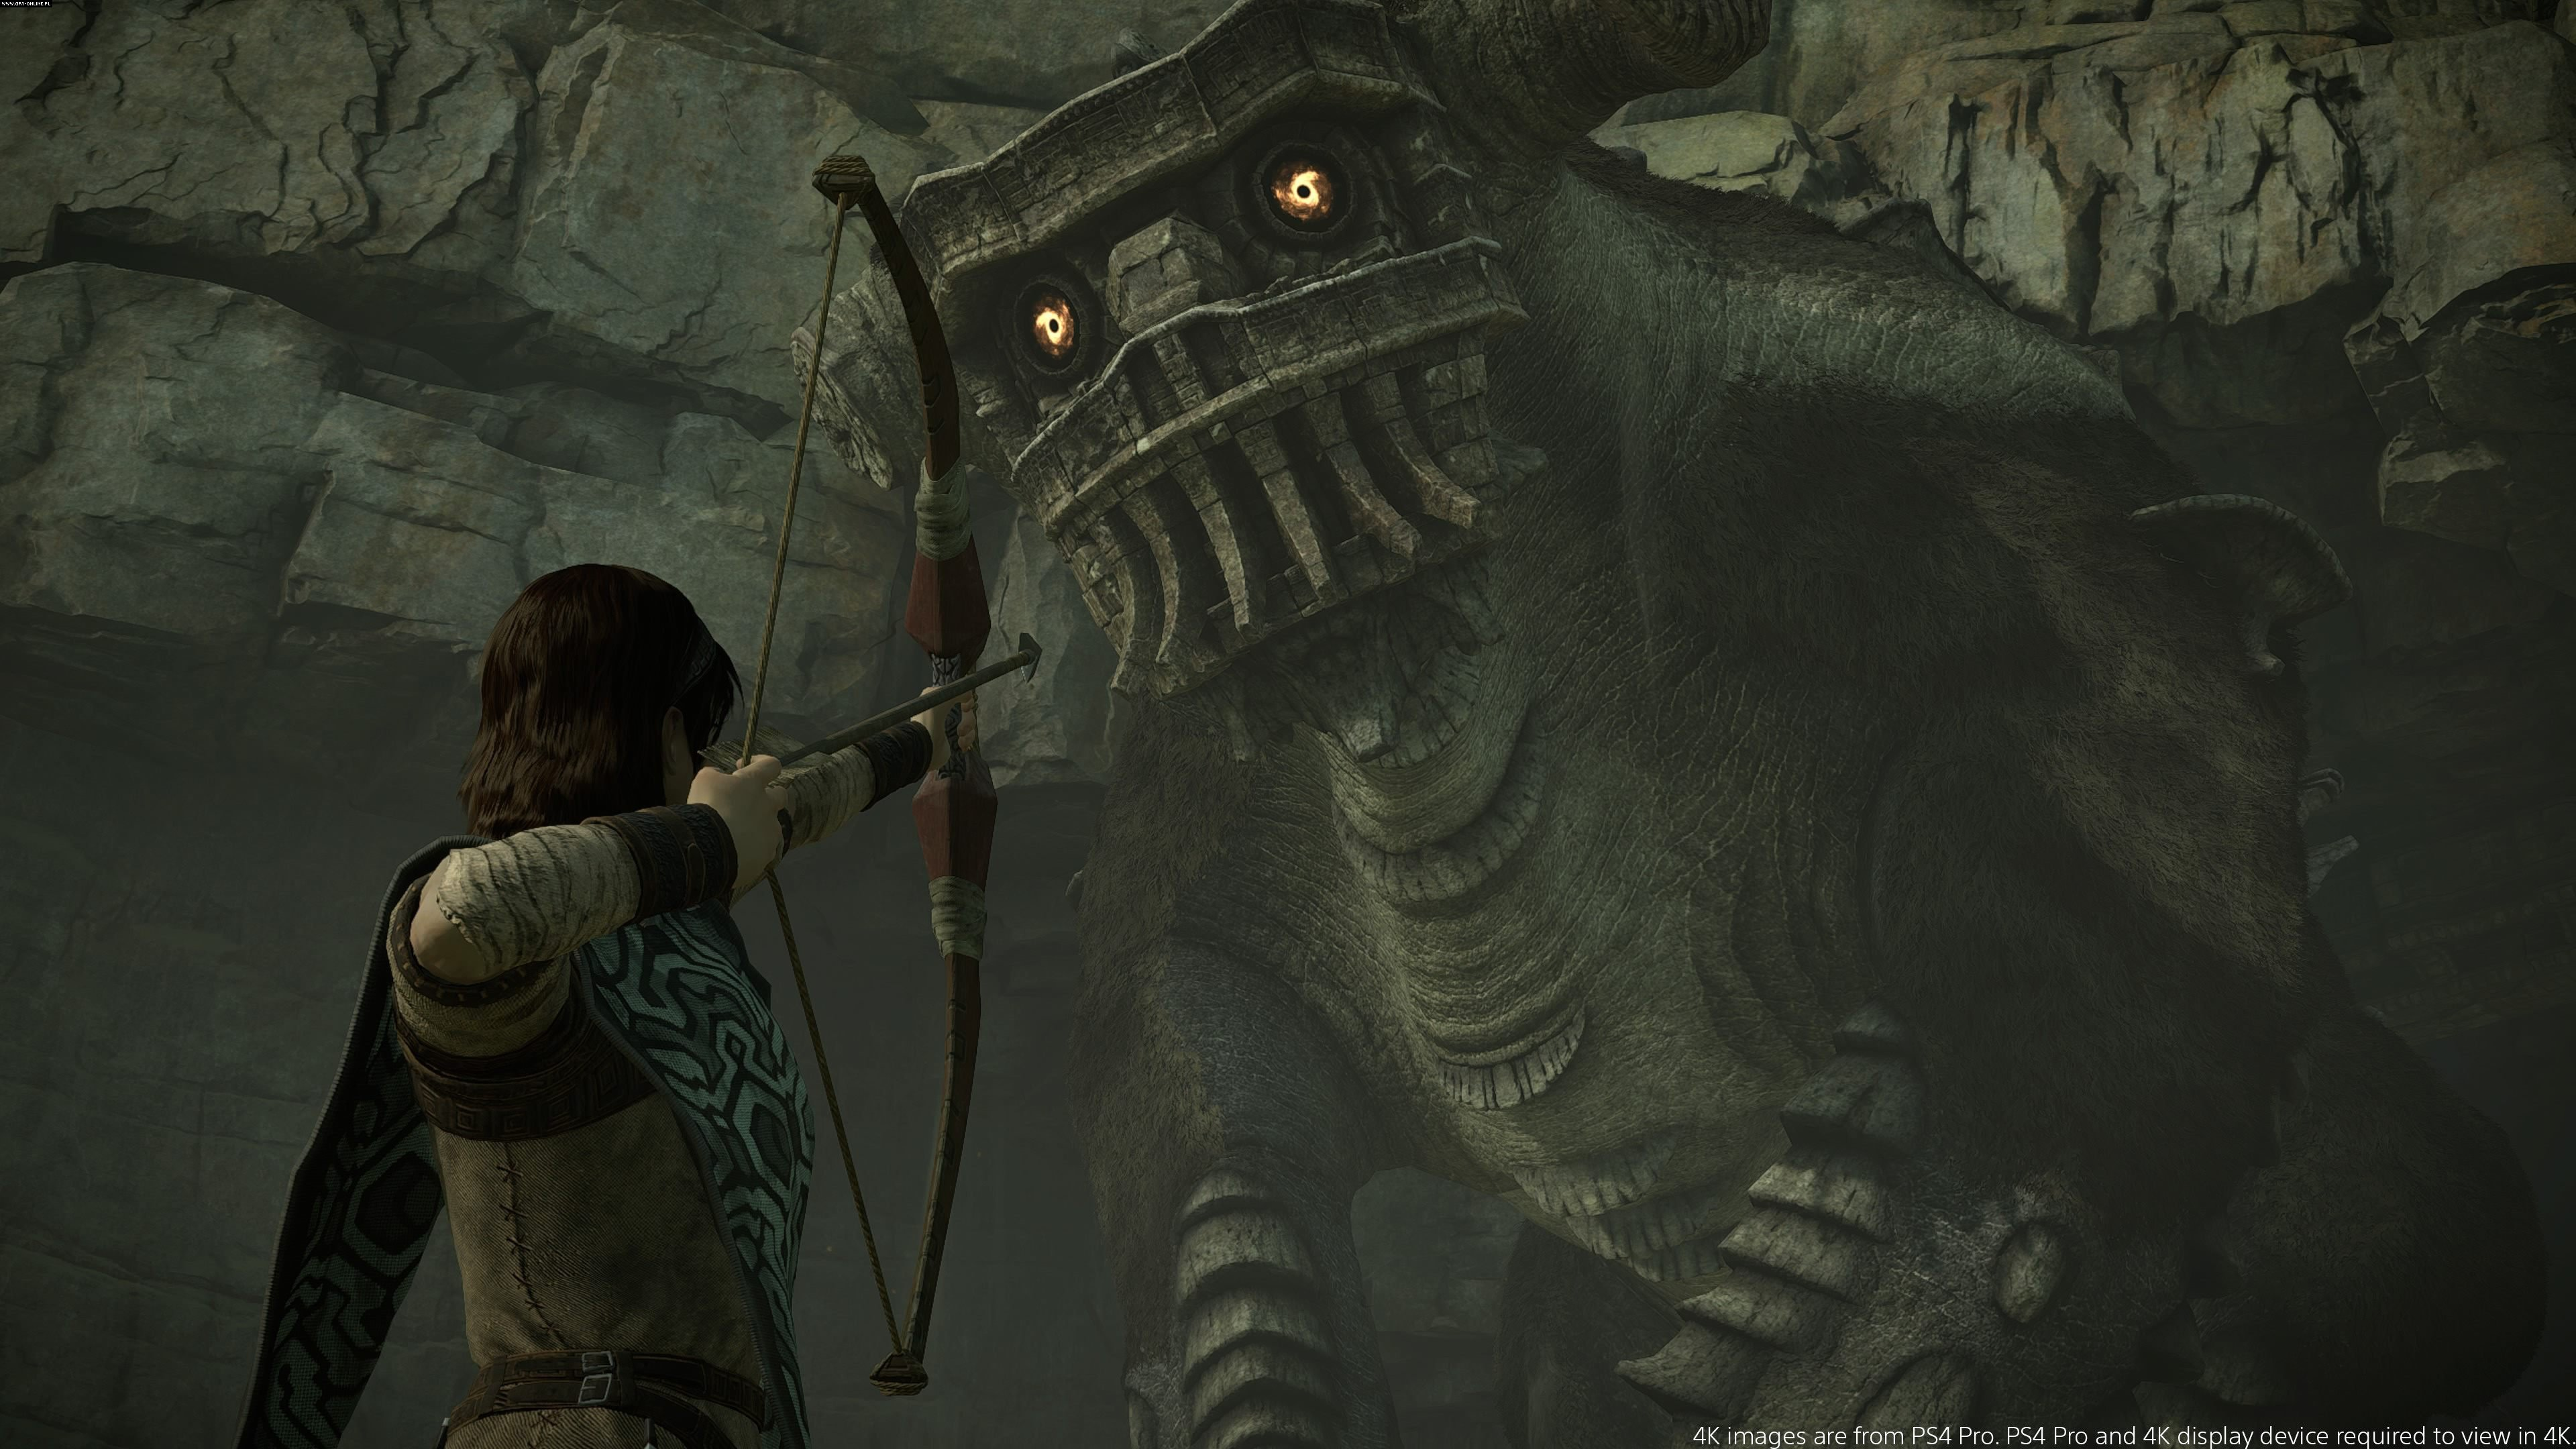 Shadow of the Colossus PS4 Gry Screen 2/32, Bluepoint Games, Sony Interactive Entertainment